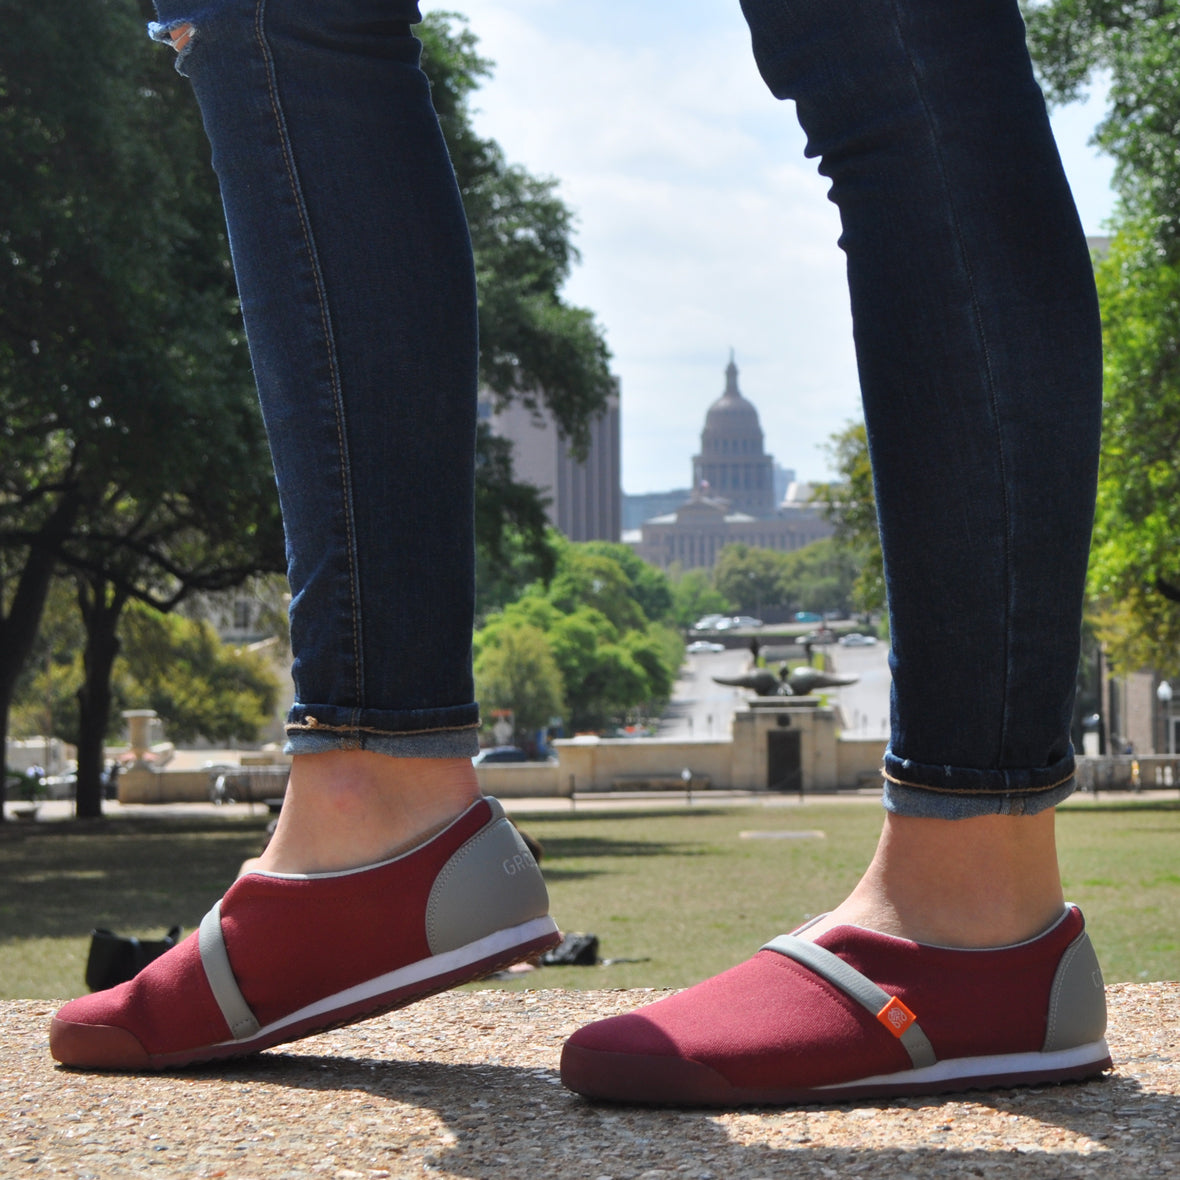 Stand for Progress in Common Ground Footwear | #StandForProgress